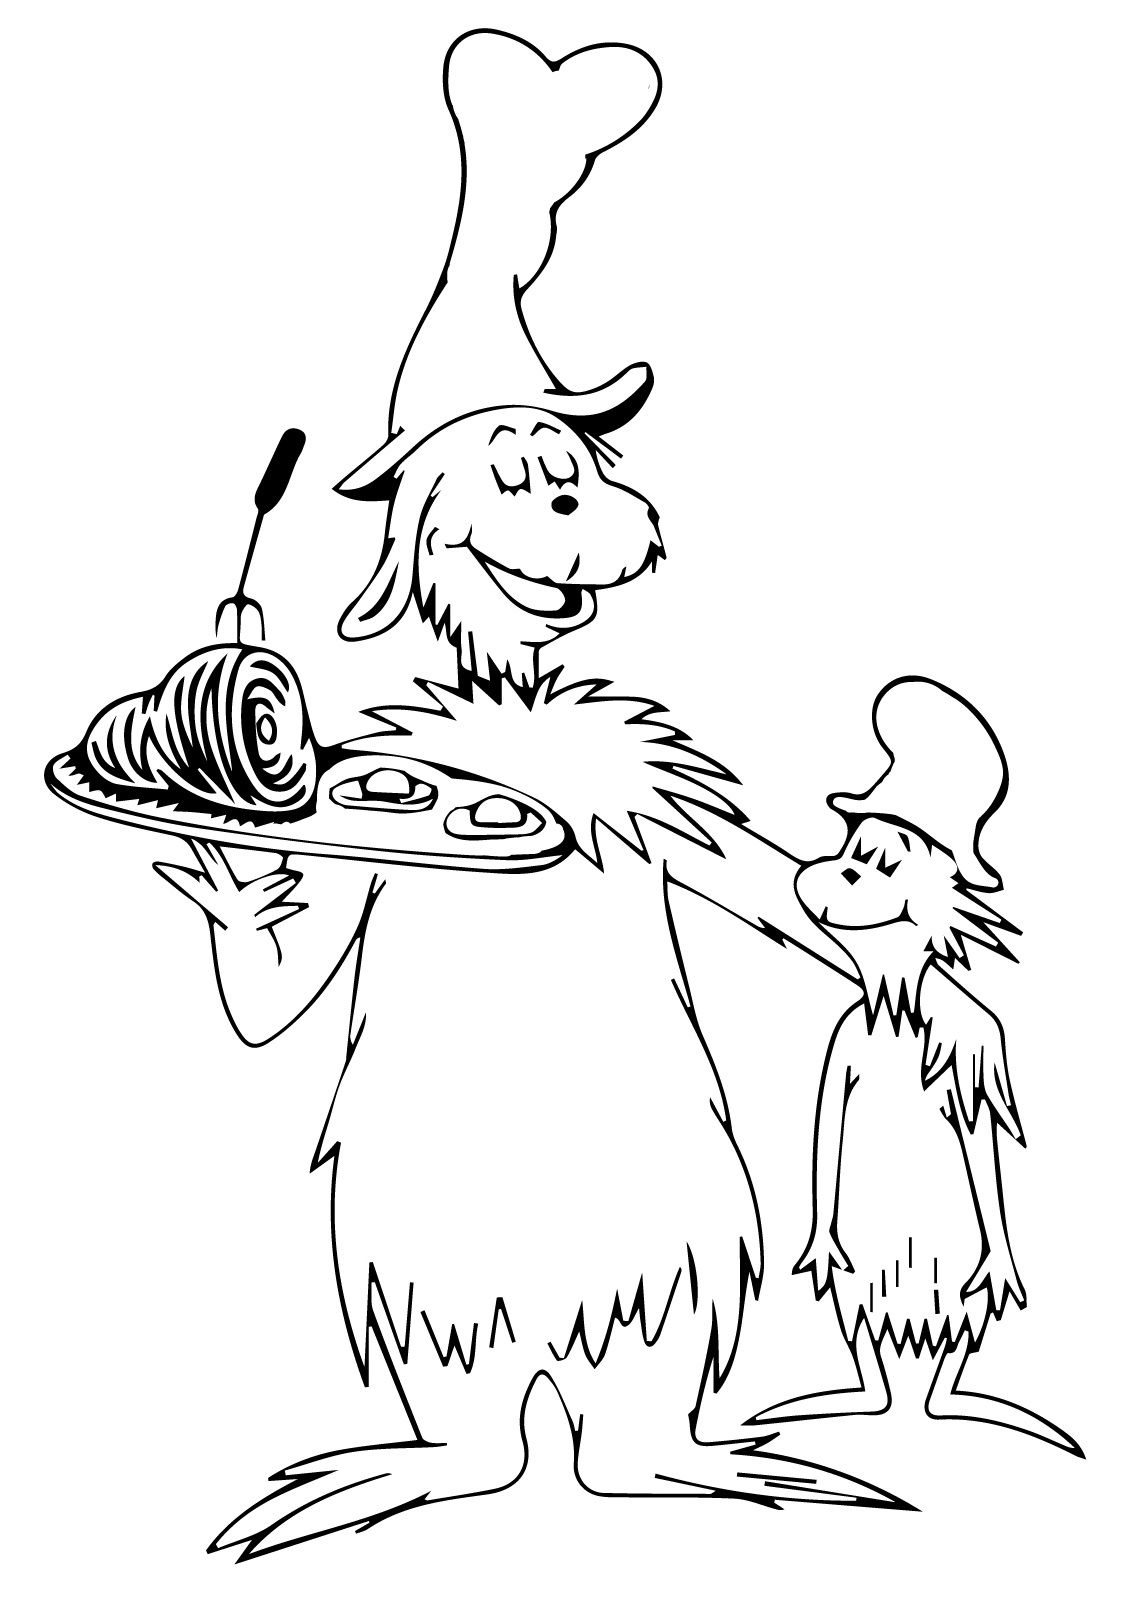 Green Eggs and Ham Coloring Pages For Free Usage  Green eggs and